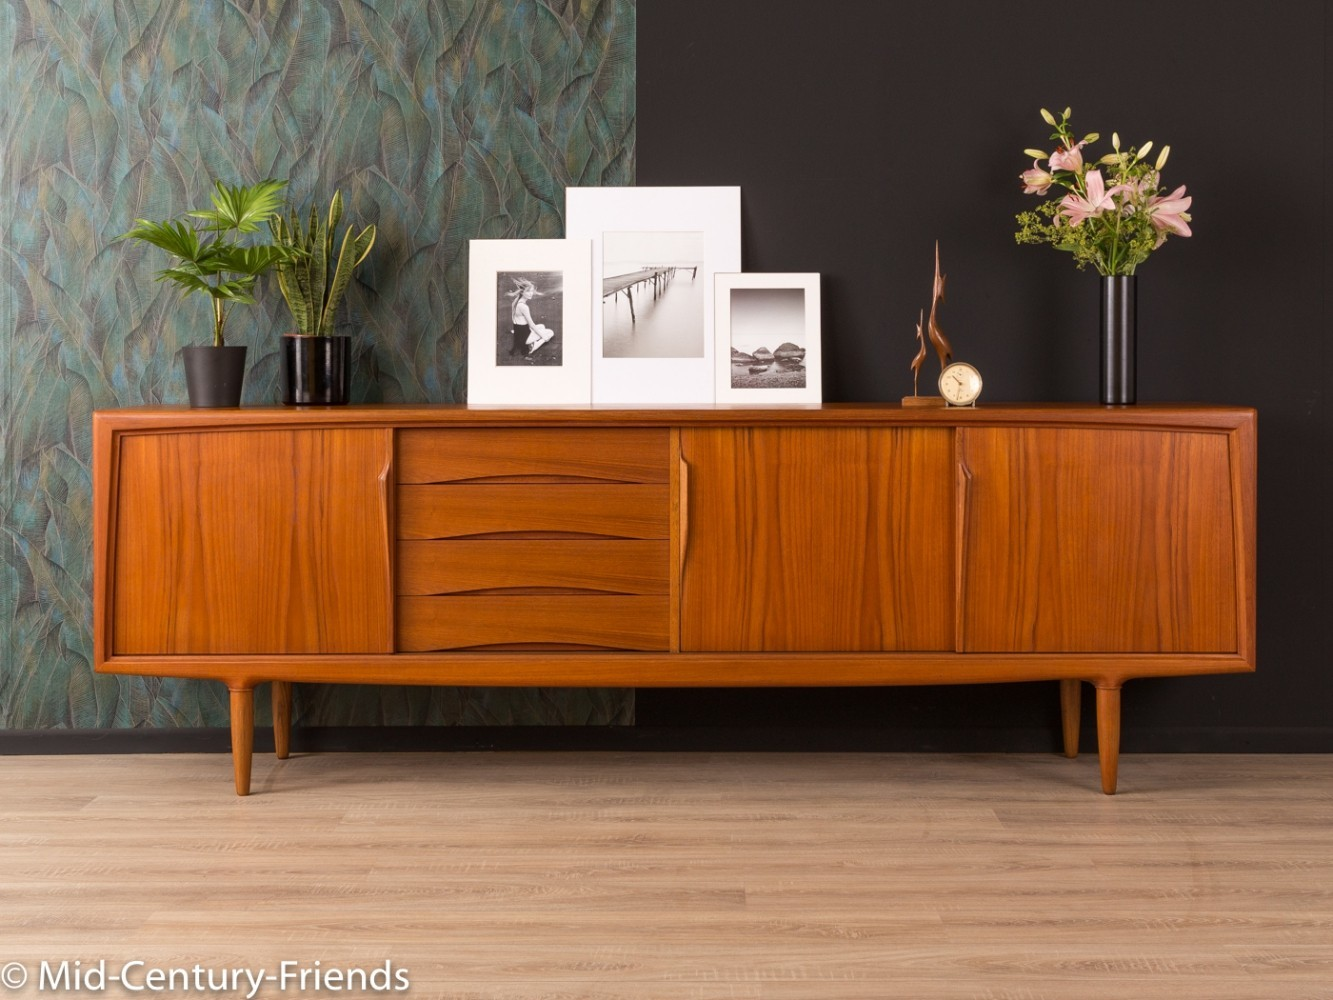 1960s Sideboard by Gunni Omann for Axel Christiansen